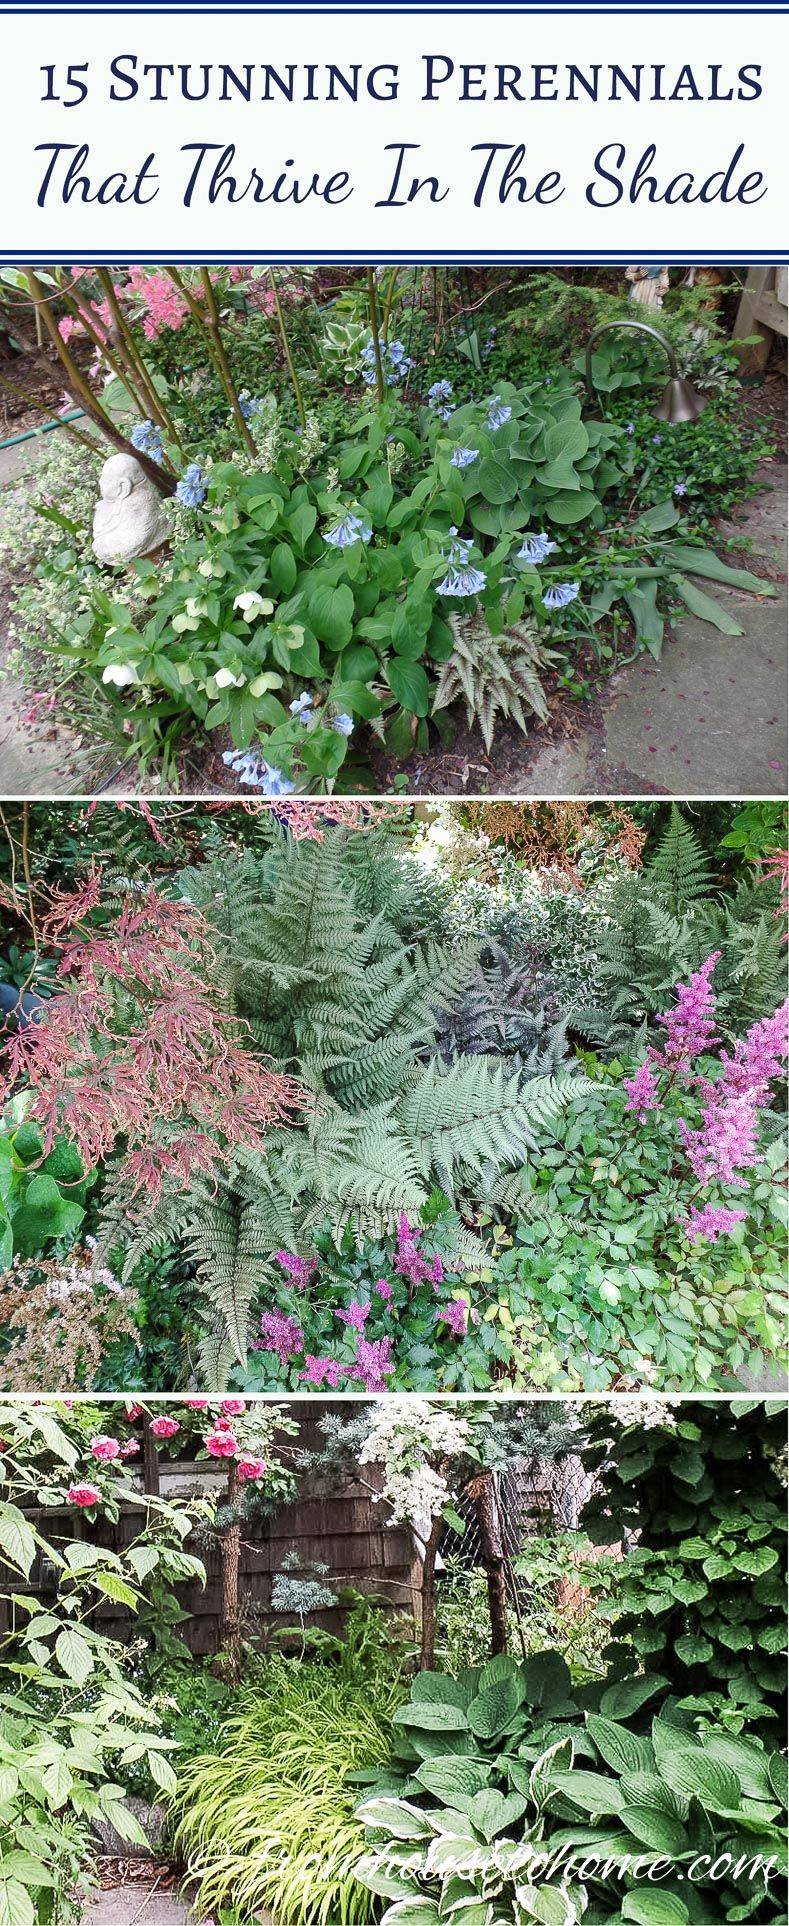 15 stunning perennial ground cover plants that thrive in the shade 15 stunning perennials that thrive in the shade this list of easy to grow shade perennials is perfect for ground covers under bushes or trees in your mightylinksfo